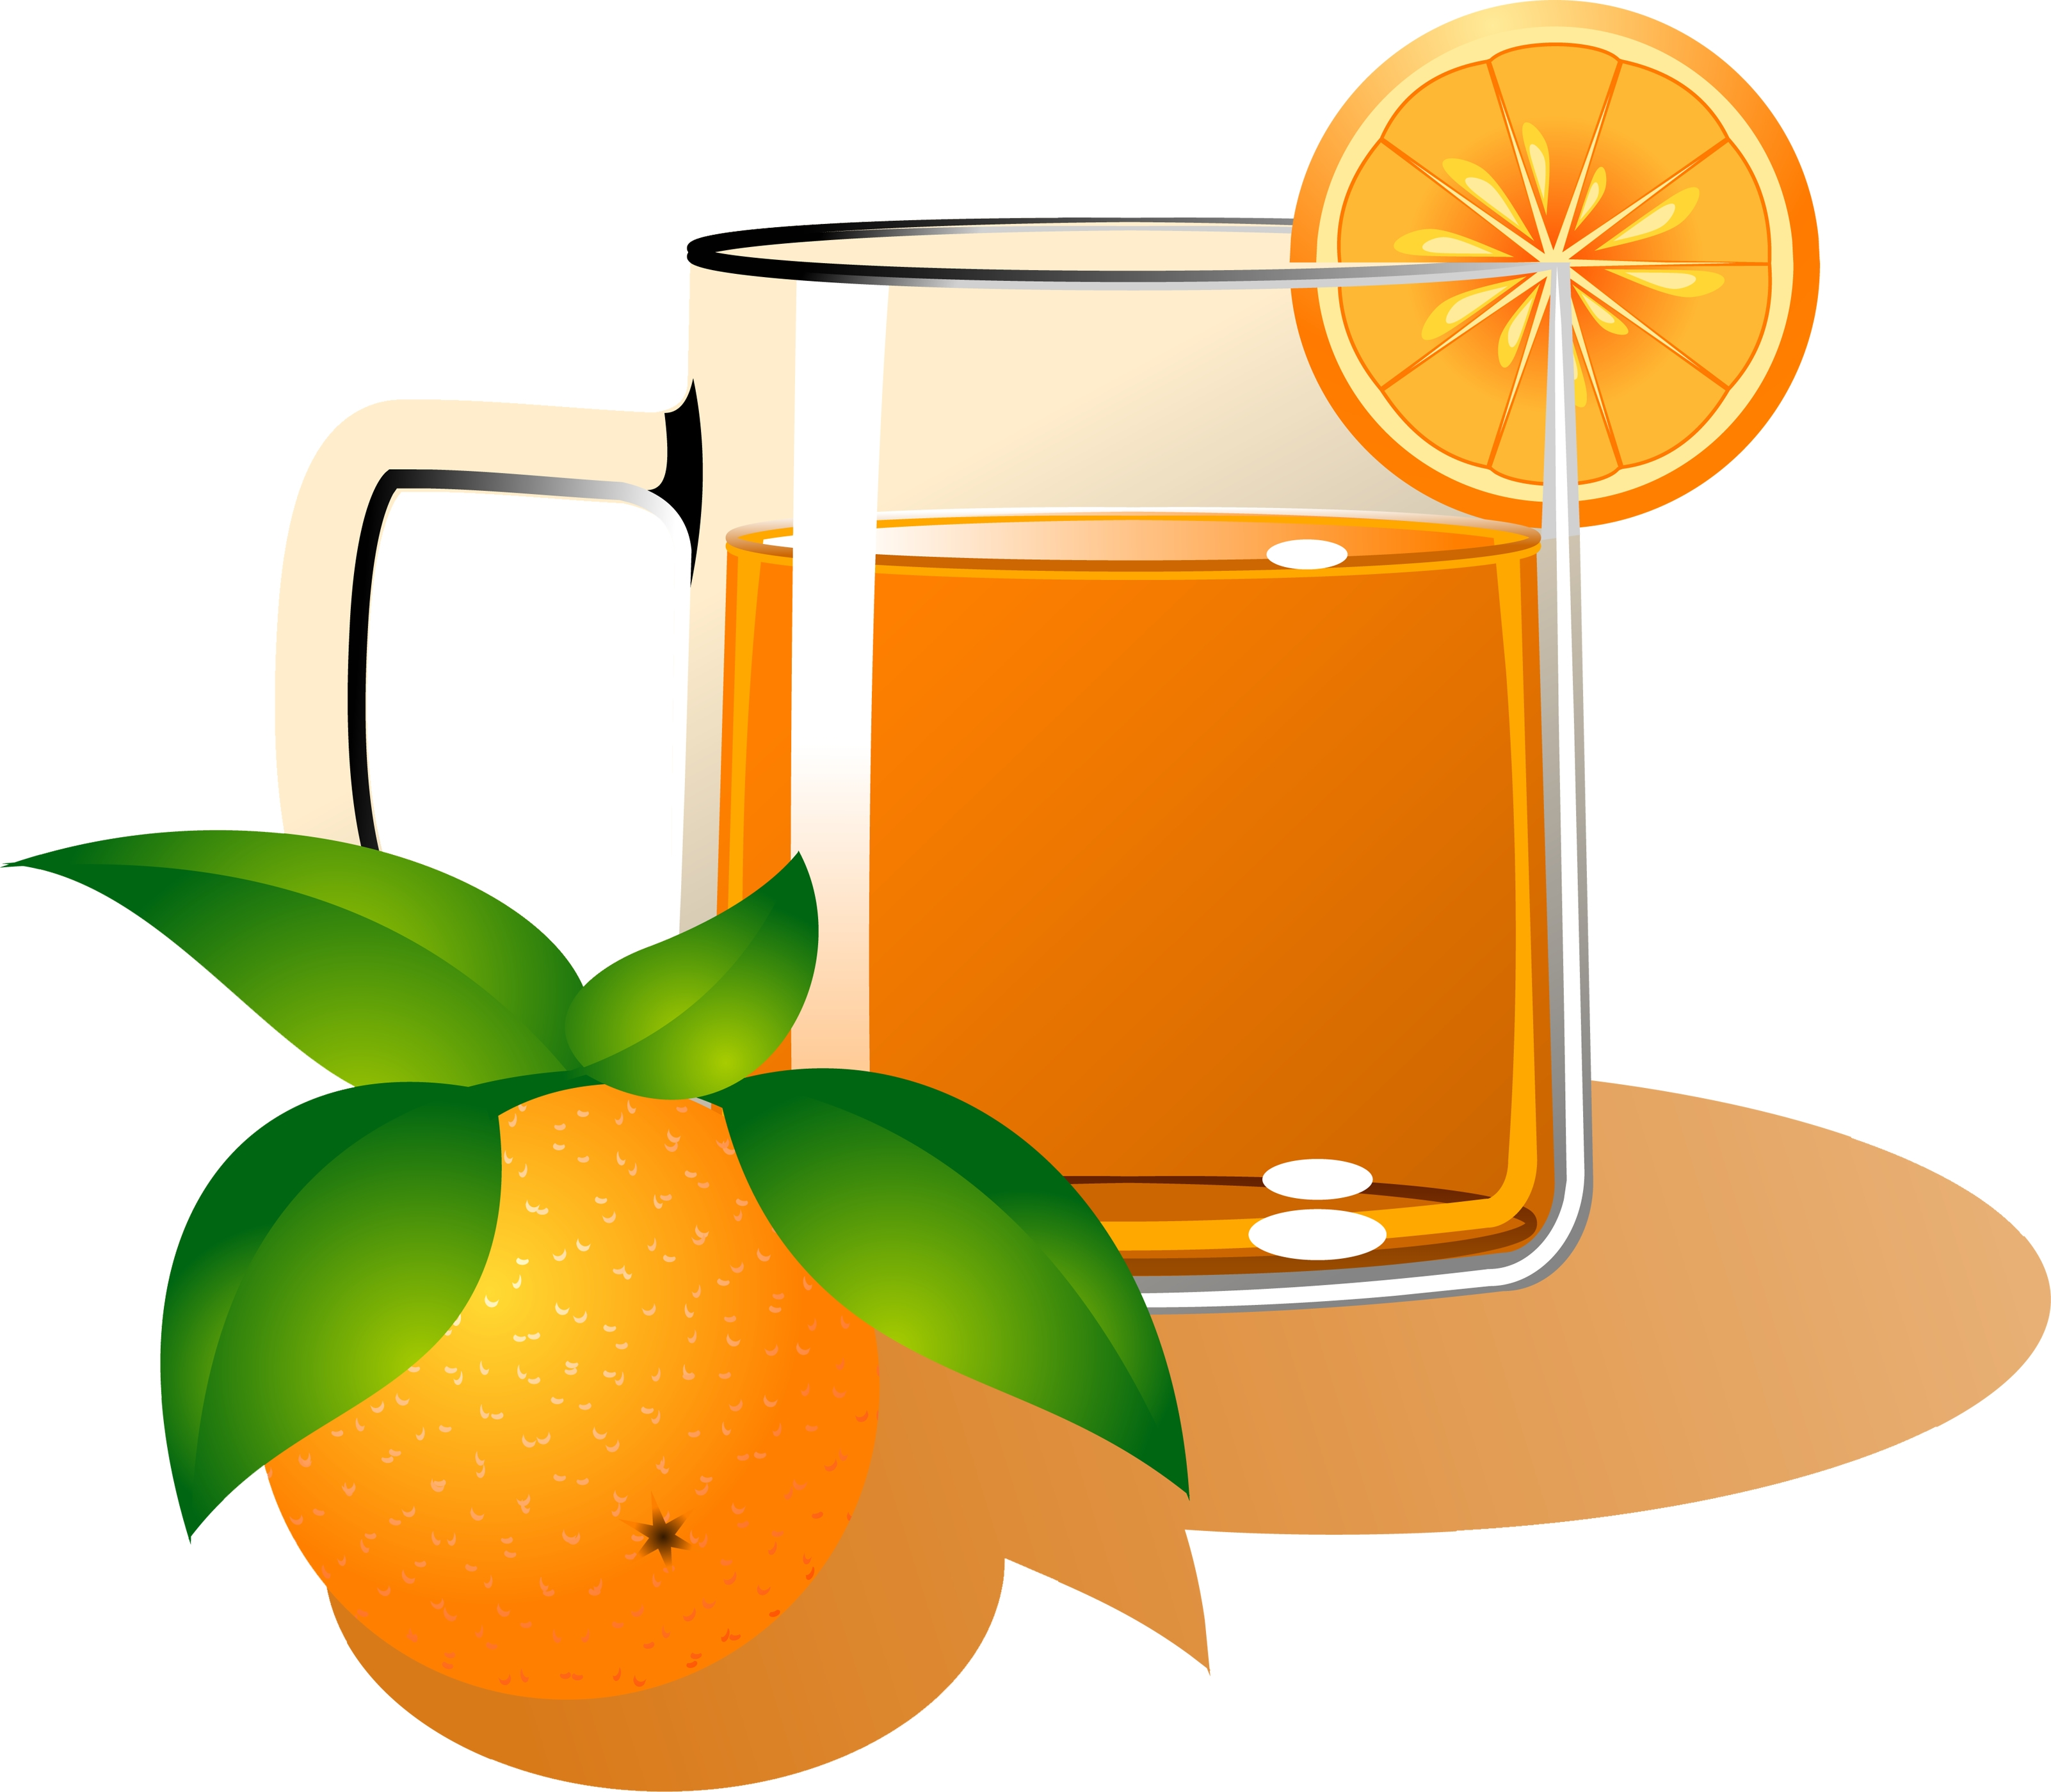 2 clipart orange. Juice g free images